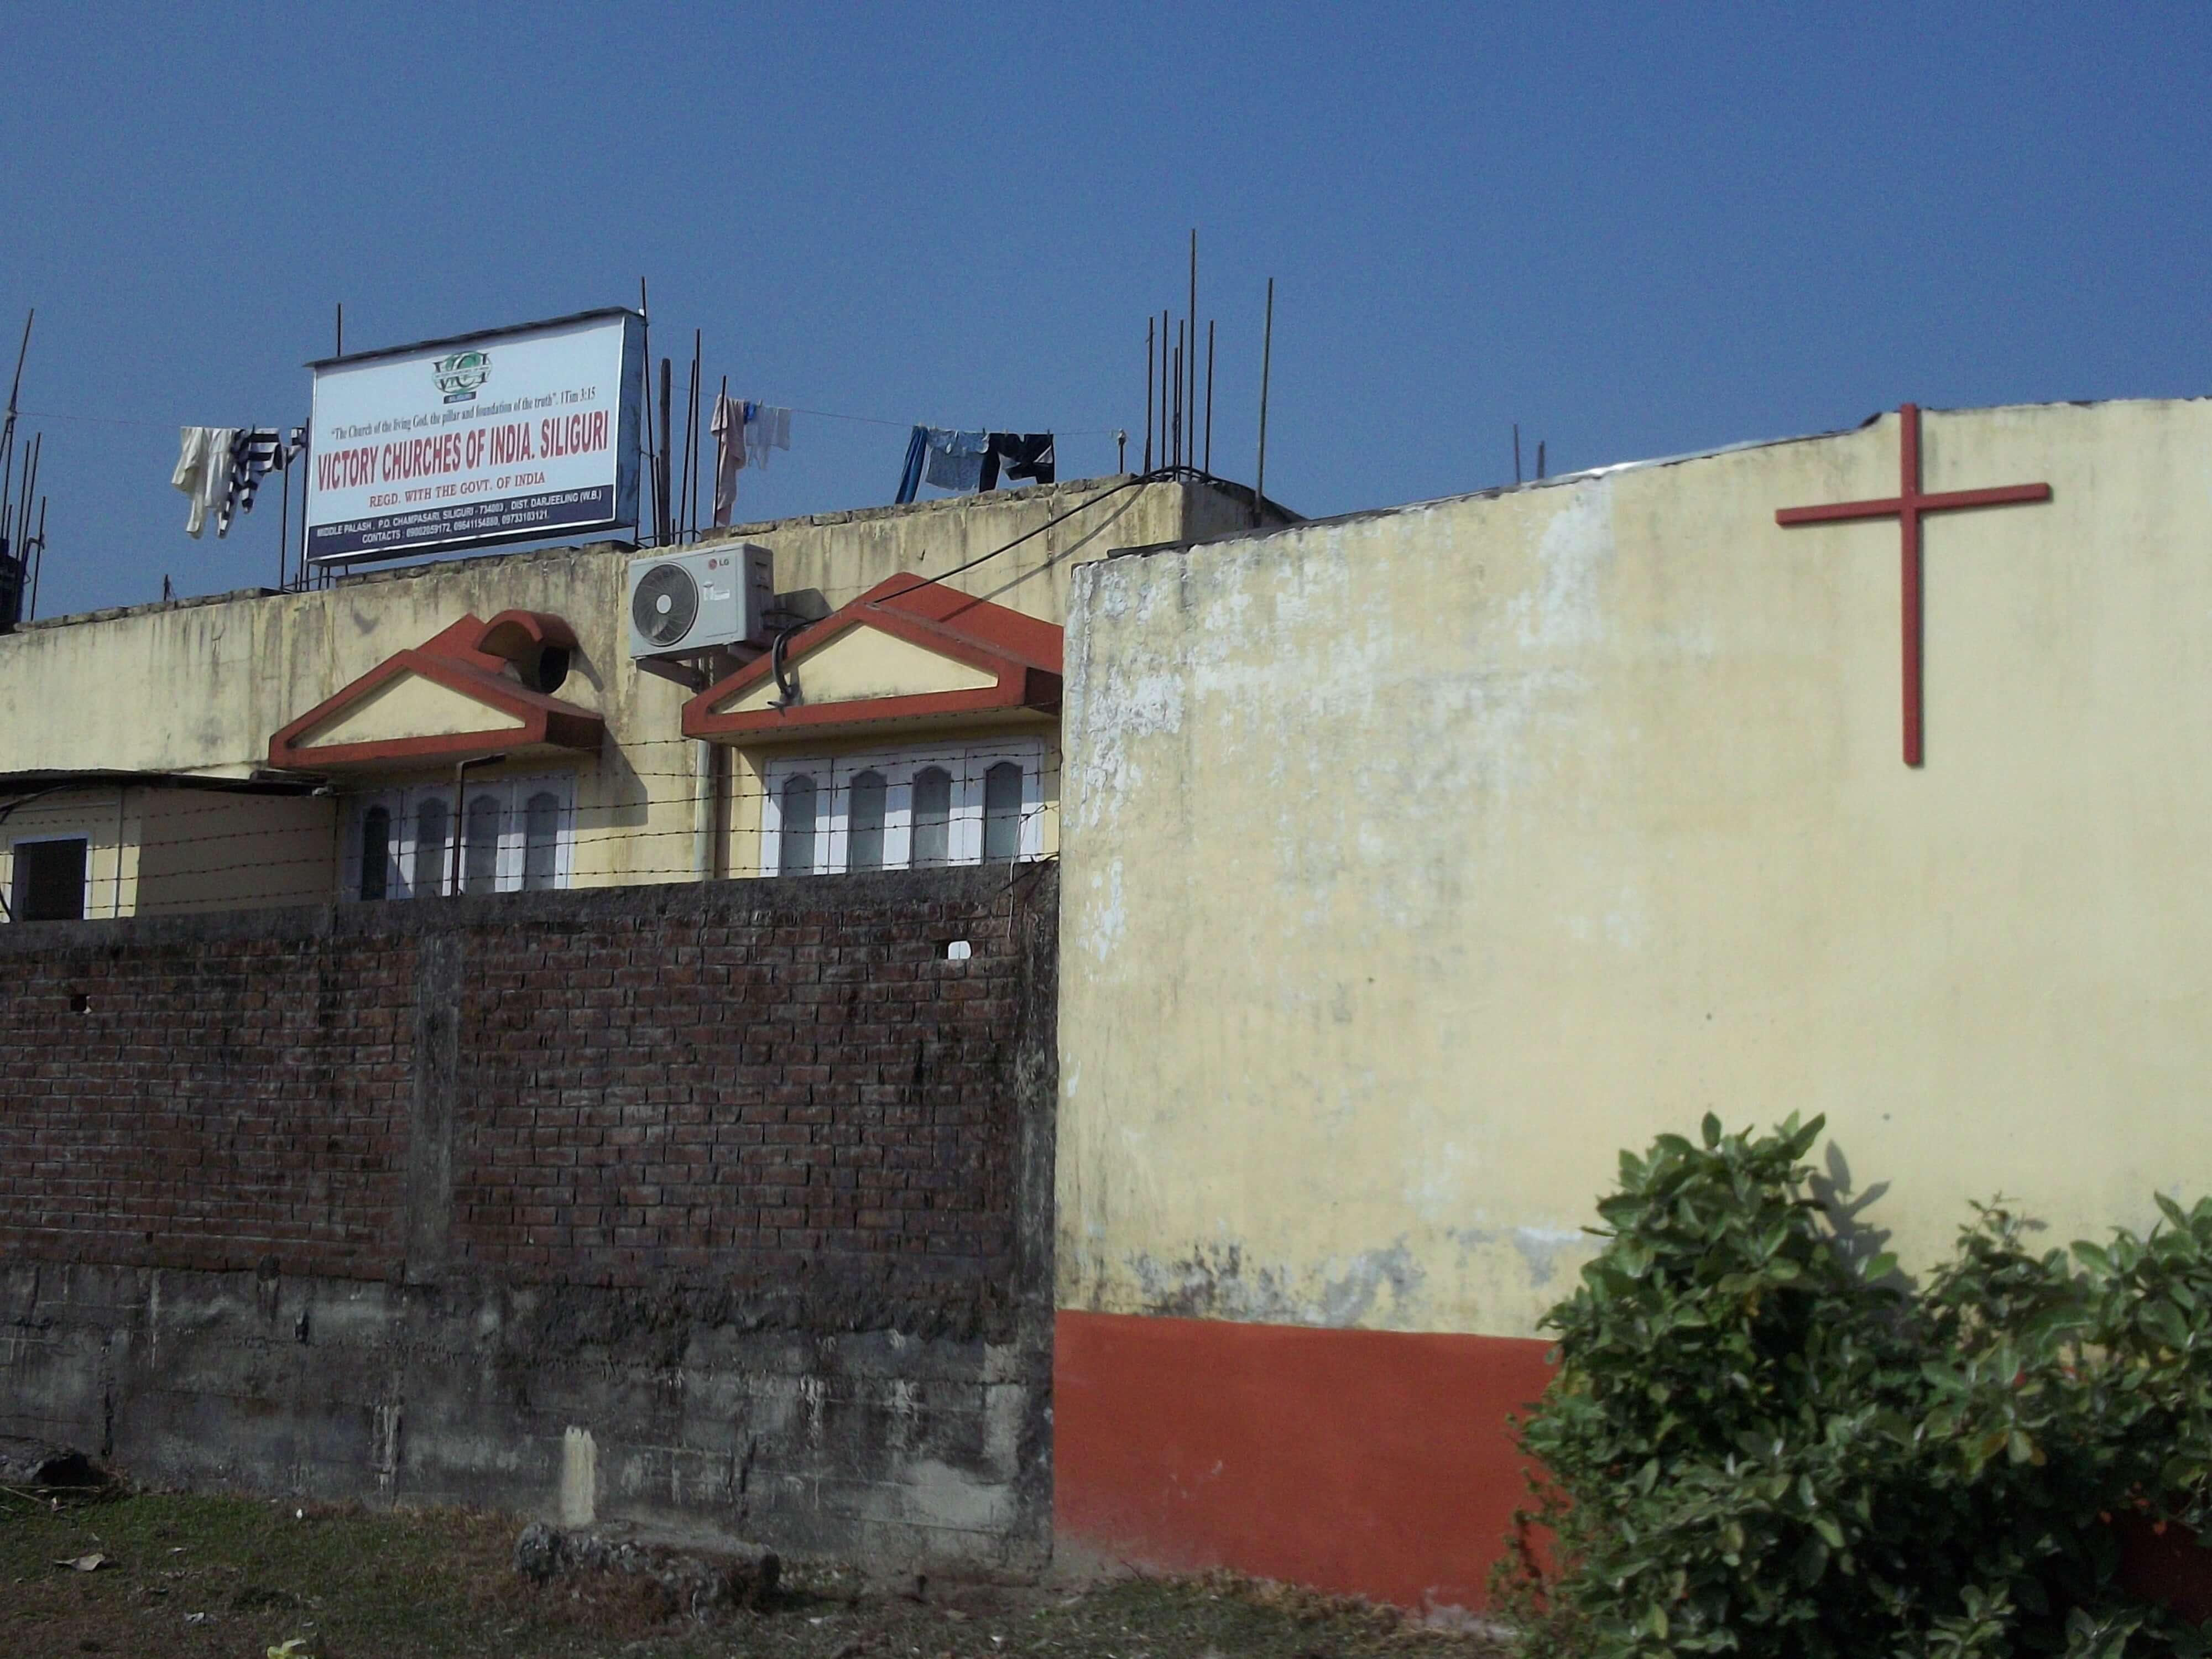 Collaboration avec les Eglises Victory Churches of India